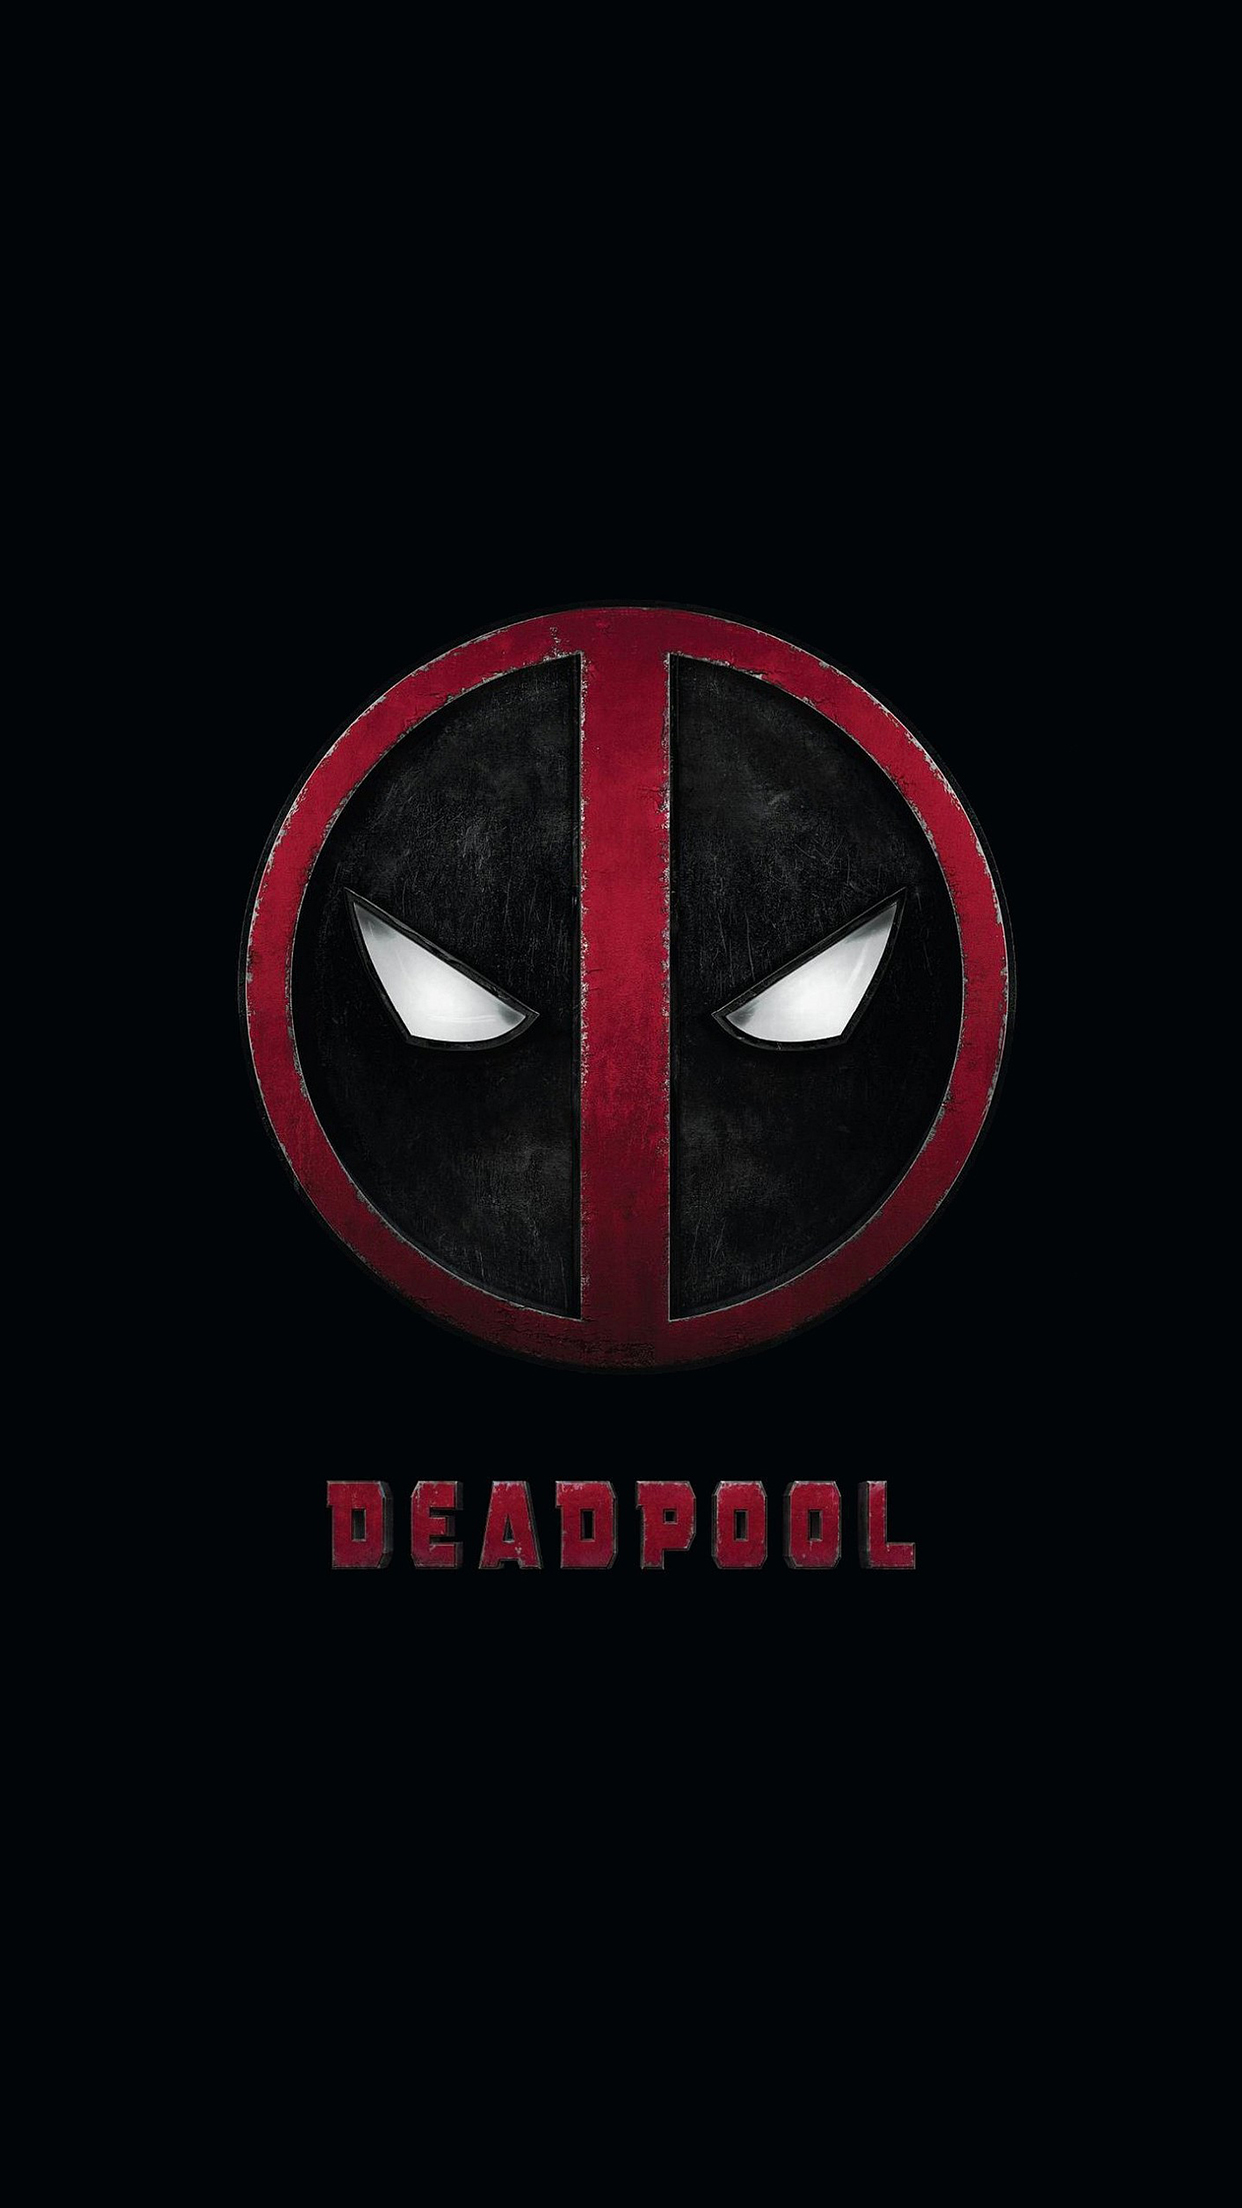 Iphone 5s Beach Wallpaper Deadpool Logo Wallpaper For Iphone X 8 7 6 Free